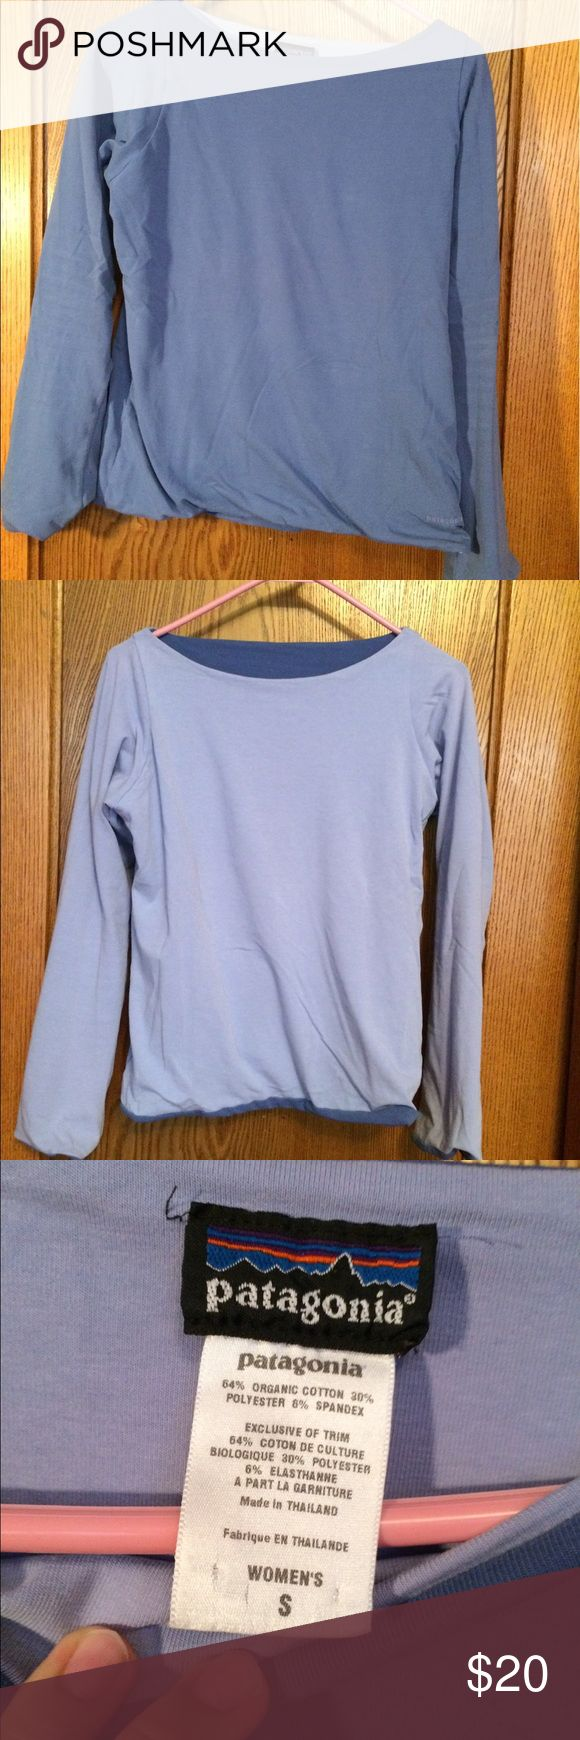 Patagonia reversible purple long sleeve top Never worn, but threw the tags away. This too is reversible, one side is dark purple and one side is light purple. Very comfortable. Patagonia Tops Tees - Long Sleeve